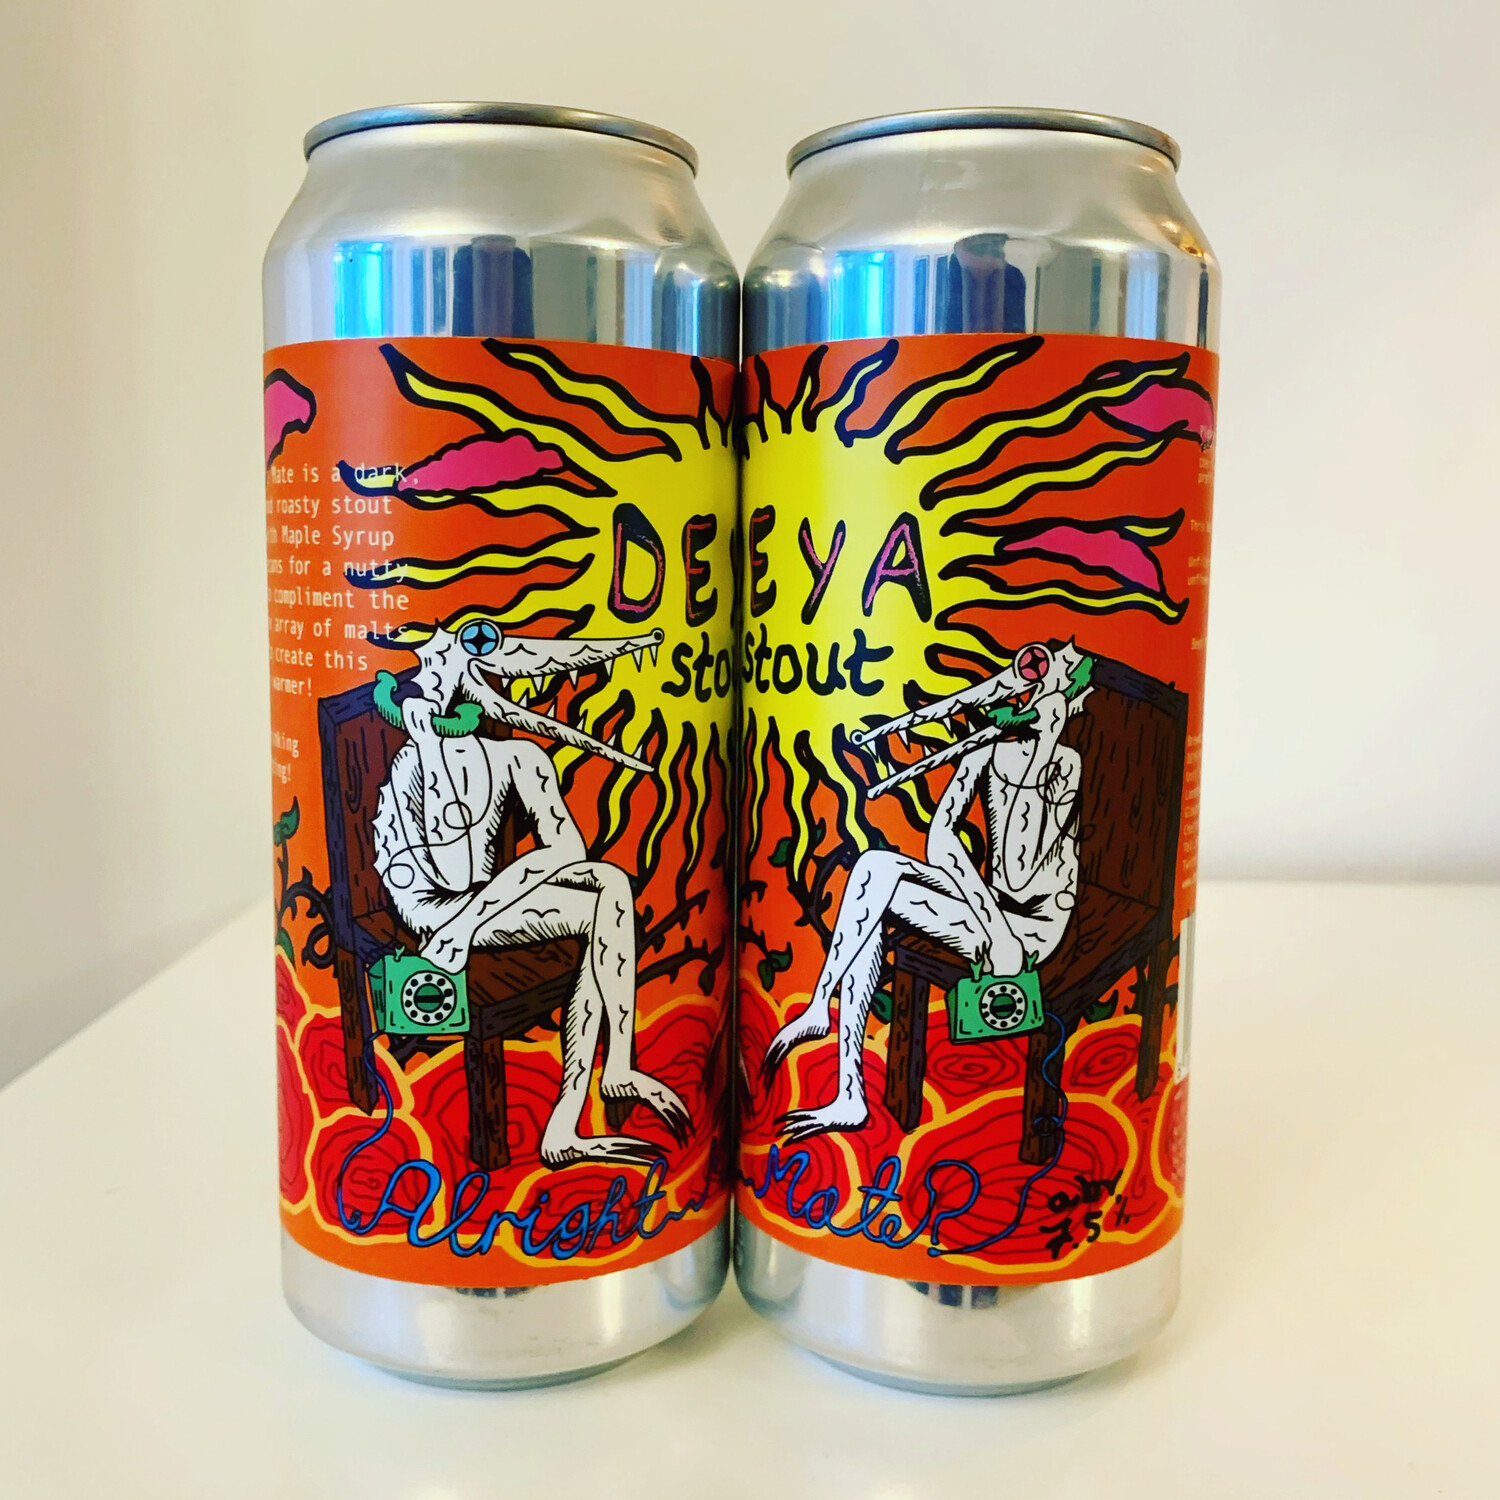 NEW DEYA 'Alright Mate' Imperial Stout 500ml - 7.5%